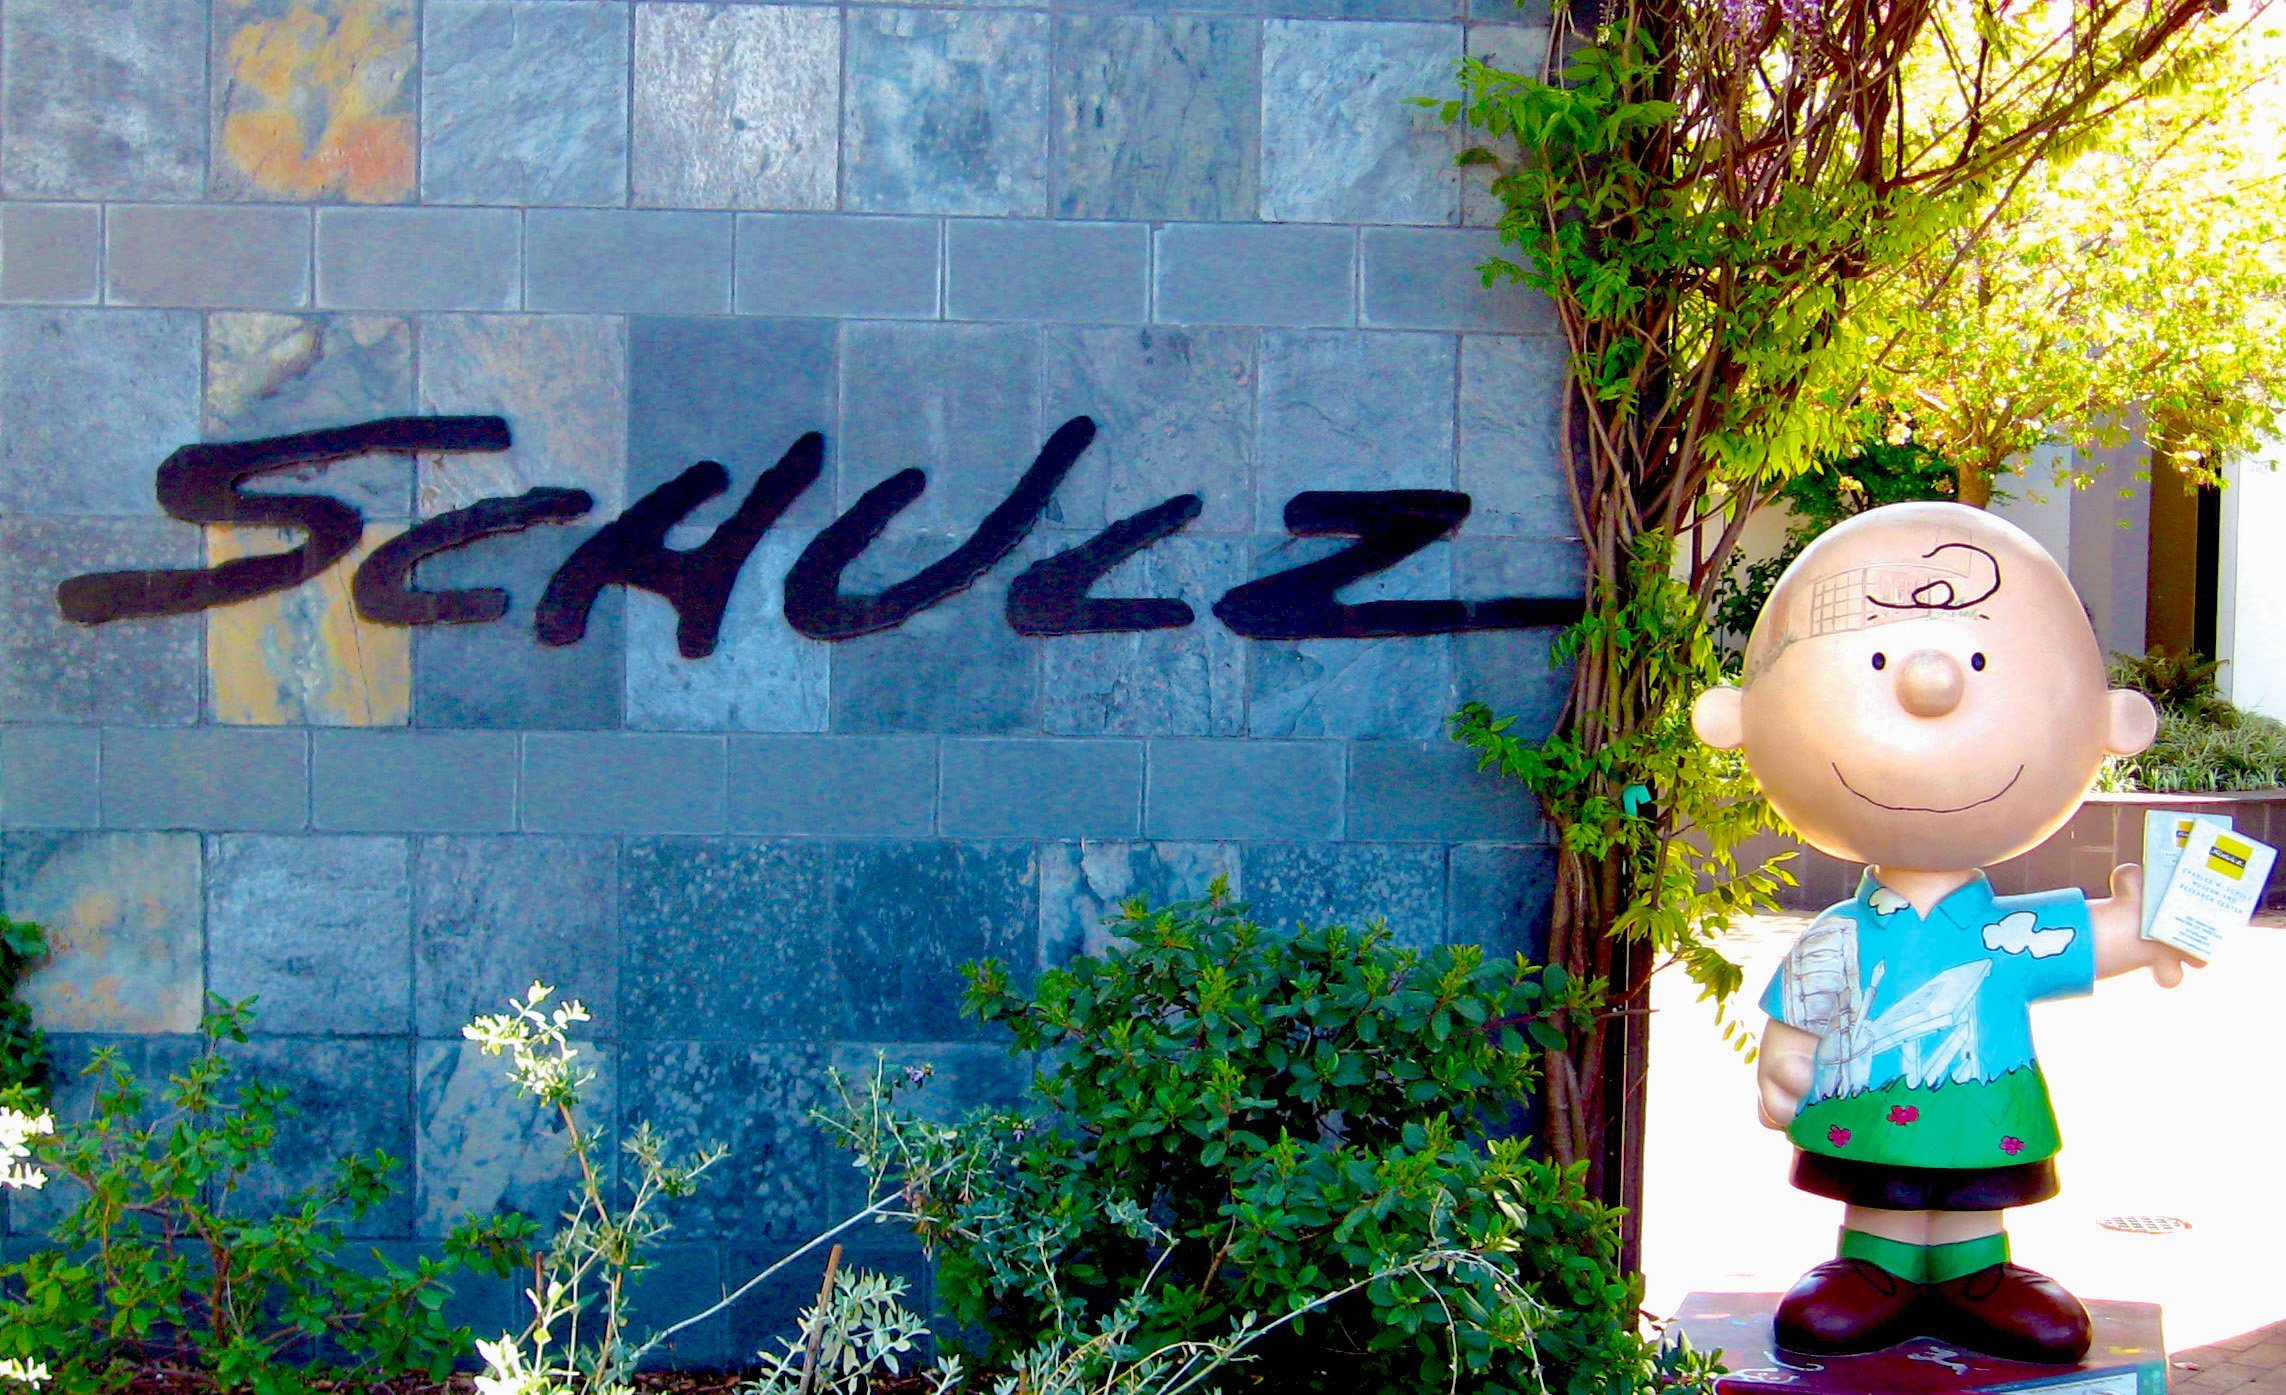 Entrance to Charles M. Schulz Museum, with a statue of Charlie Brown next to it, Santa Rosa, Ca